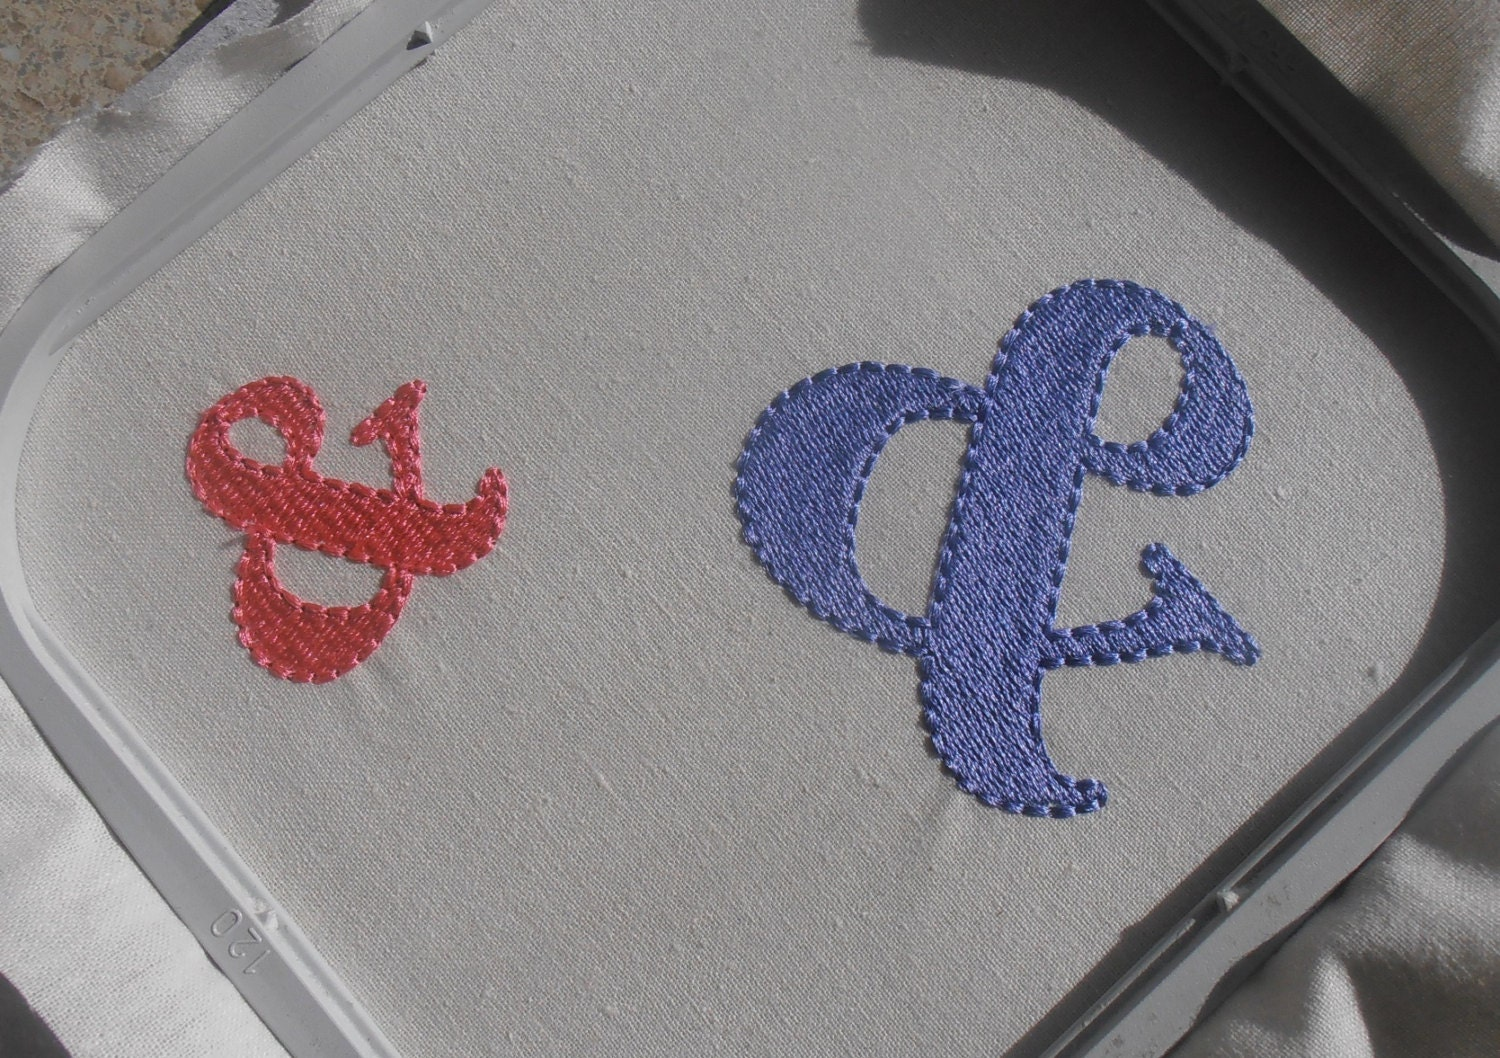 And ampersand machine embroidery design symbol 2 for Ampersand decoration etsy